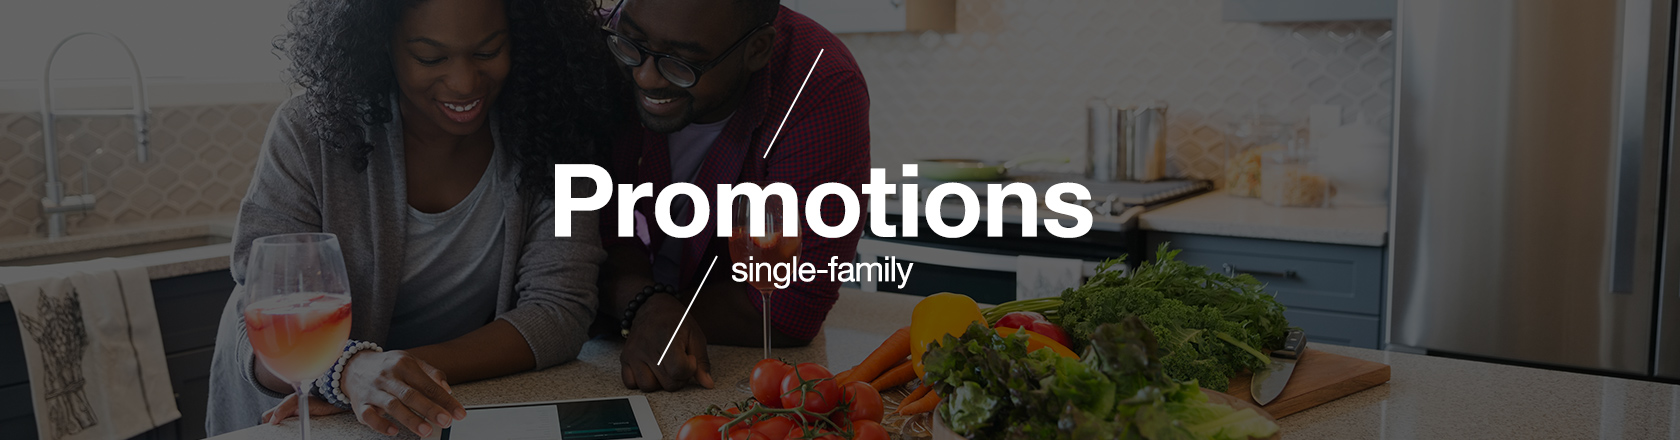 Single-Family Promotions banner